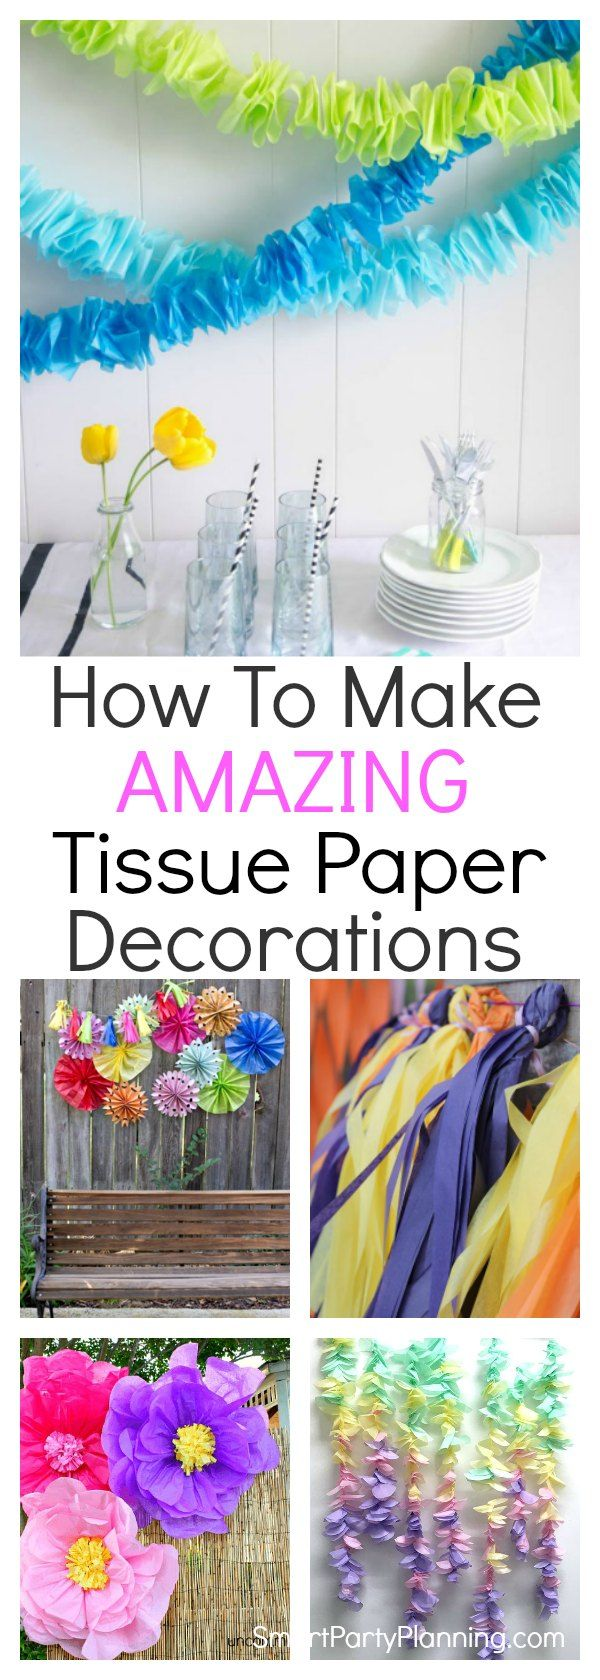 How To Make Amazing Tissue Paper Decorations -   18 diy Paper pom poms ideas